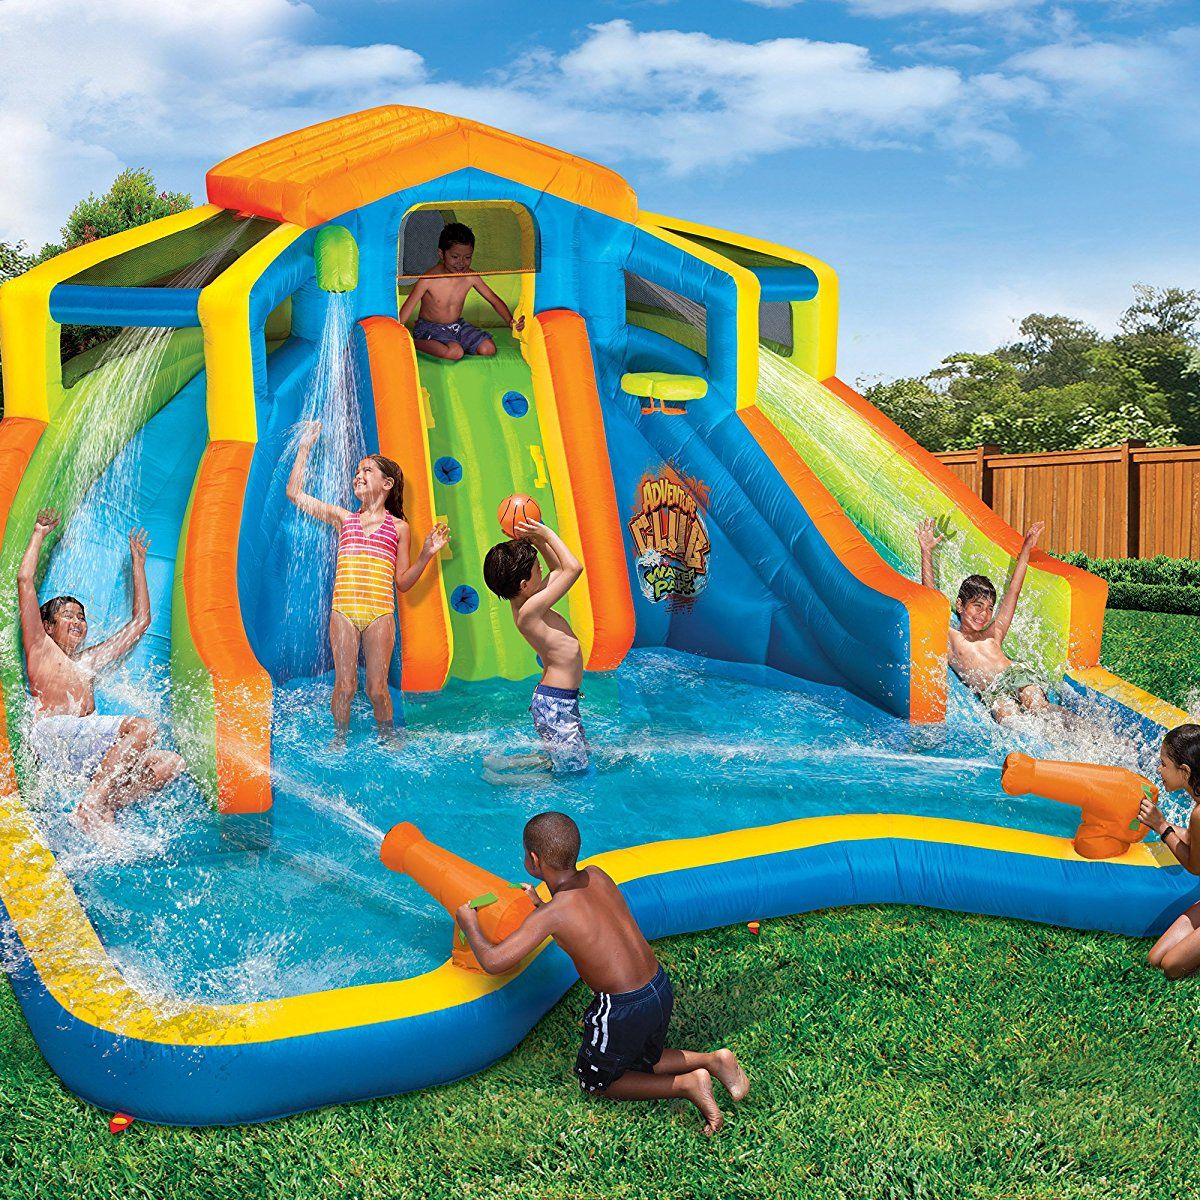 Inflatable Slide Splash: Banzai Inflatable Adventure Club Dual Slide And Pool